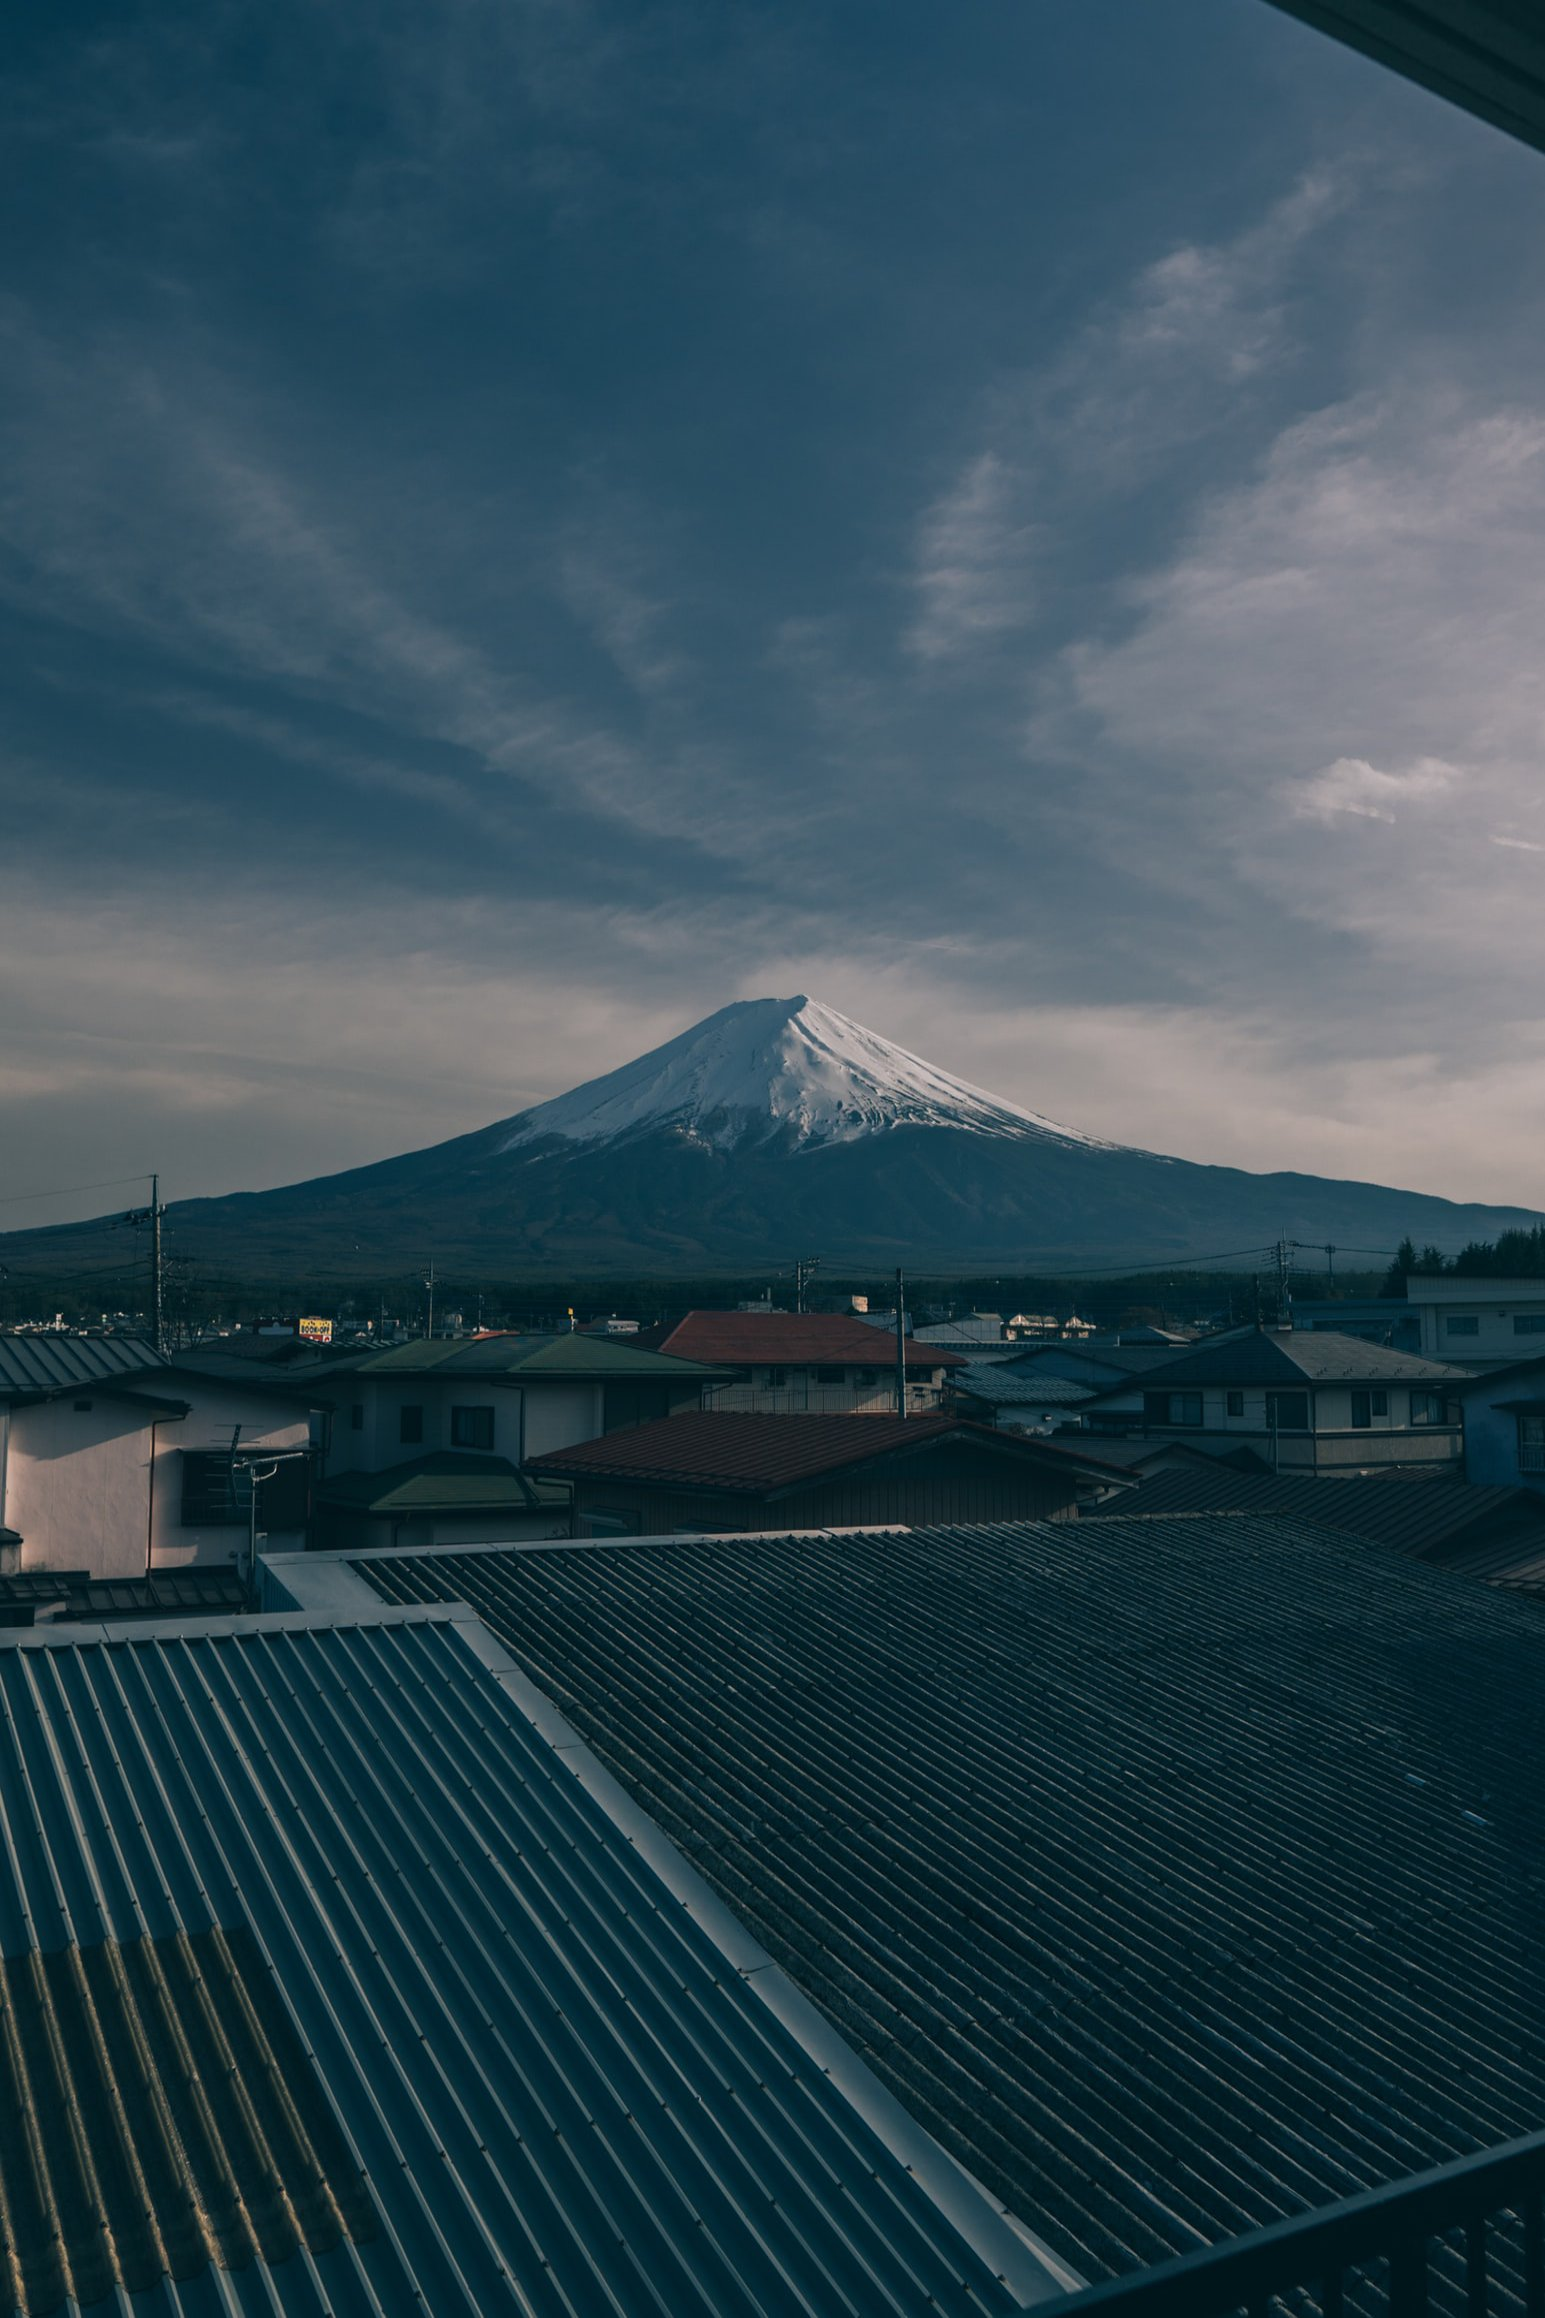 Japan real estate financial planning low-risk investment big Mt. Fuji reduce your health insurance or pension premiums